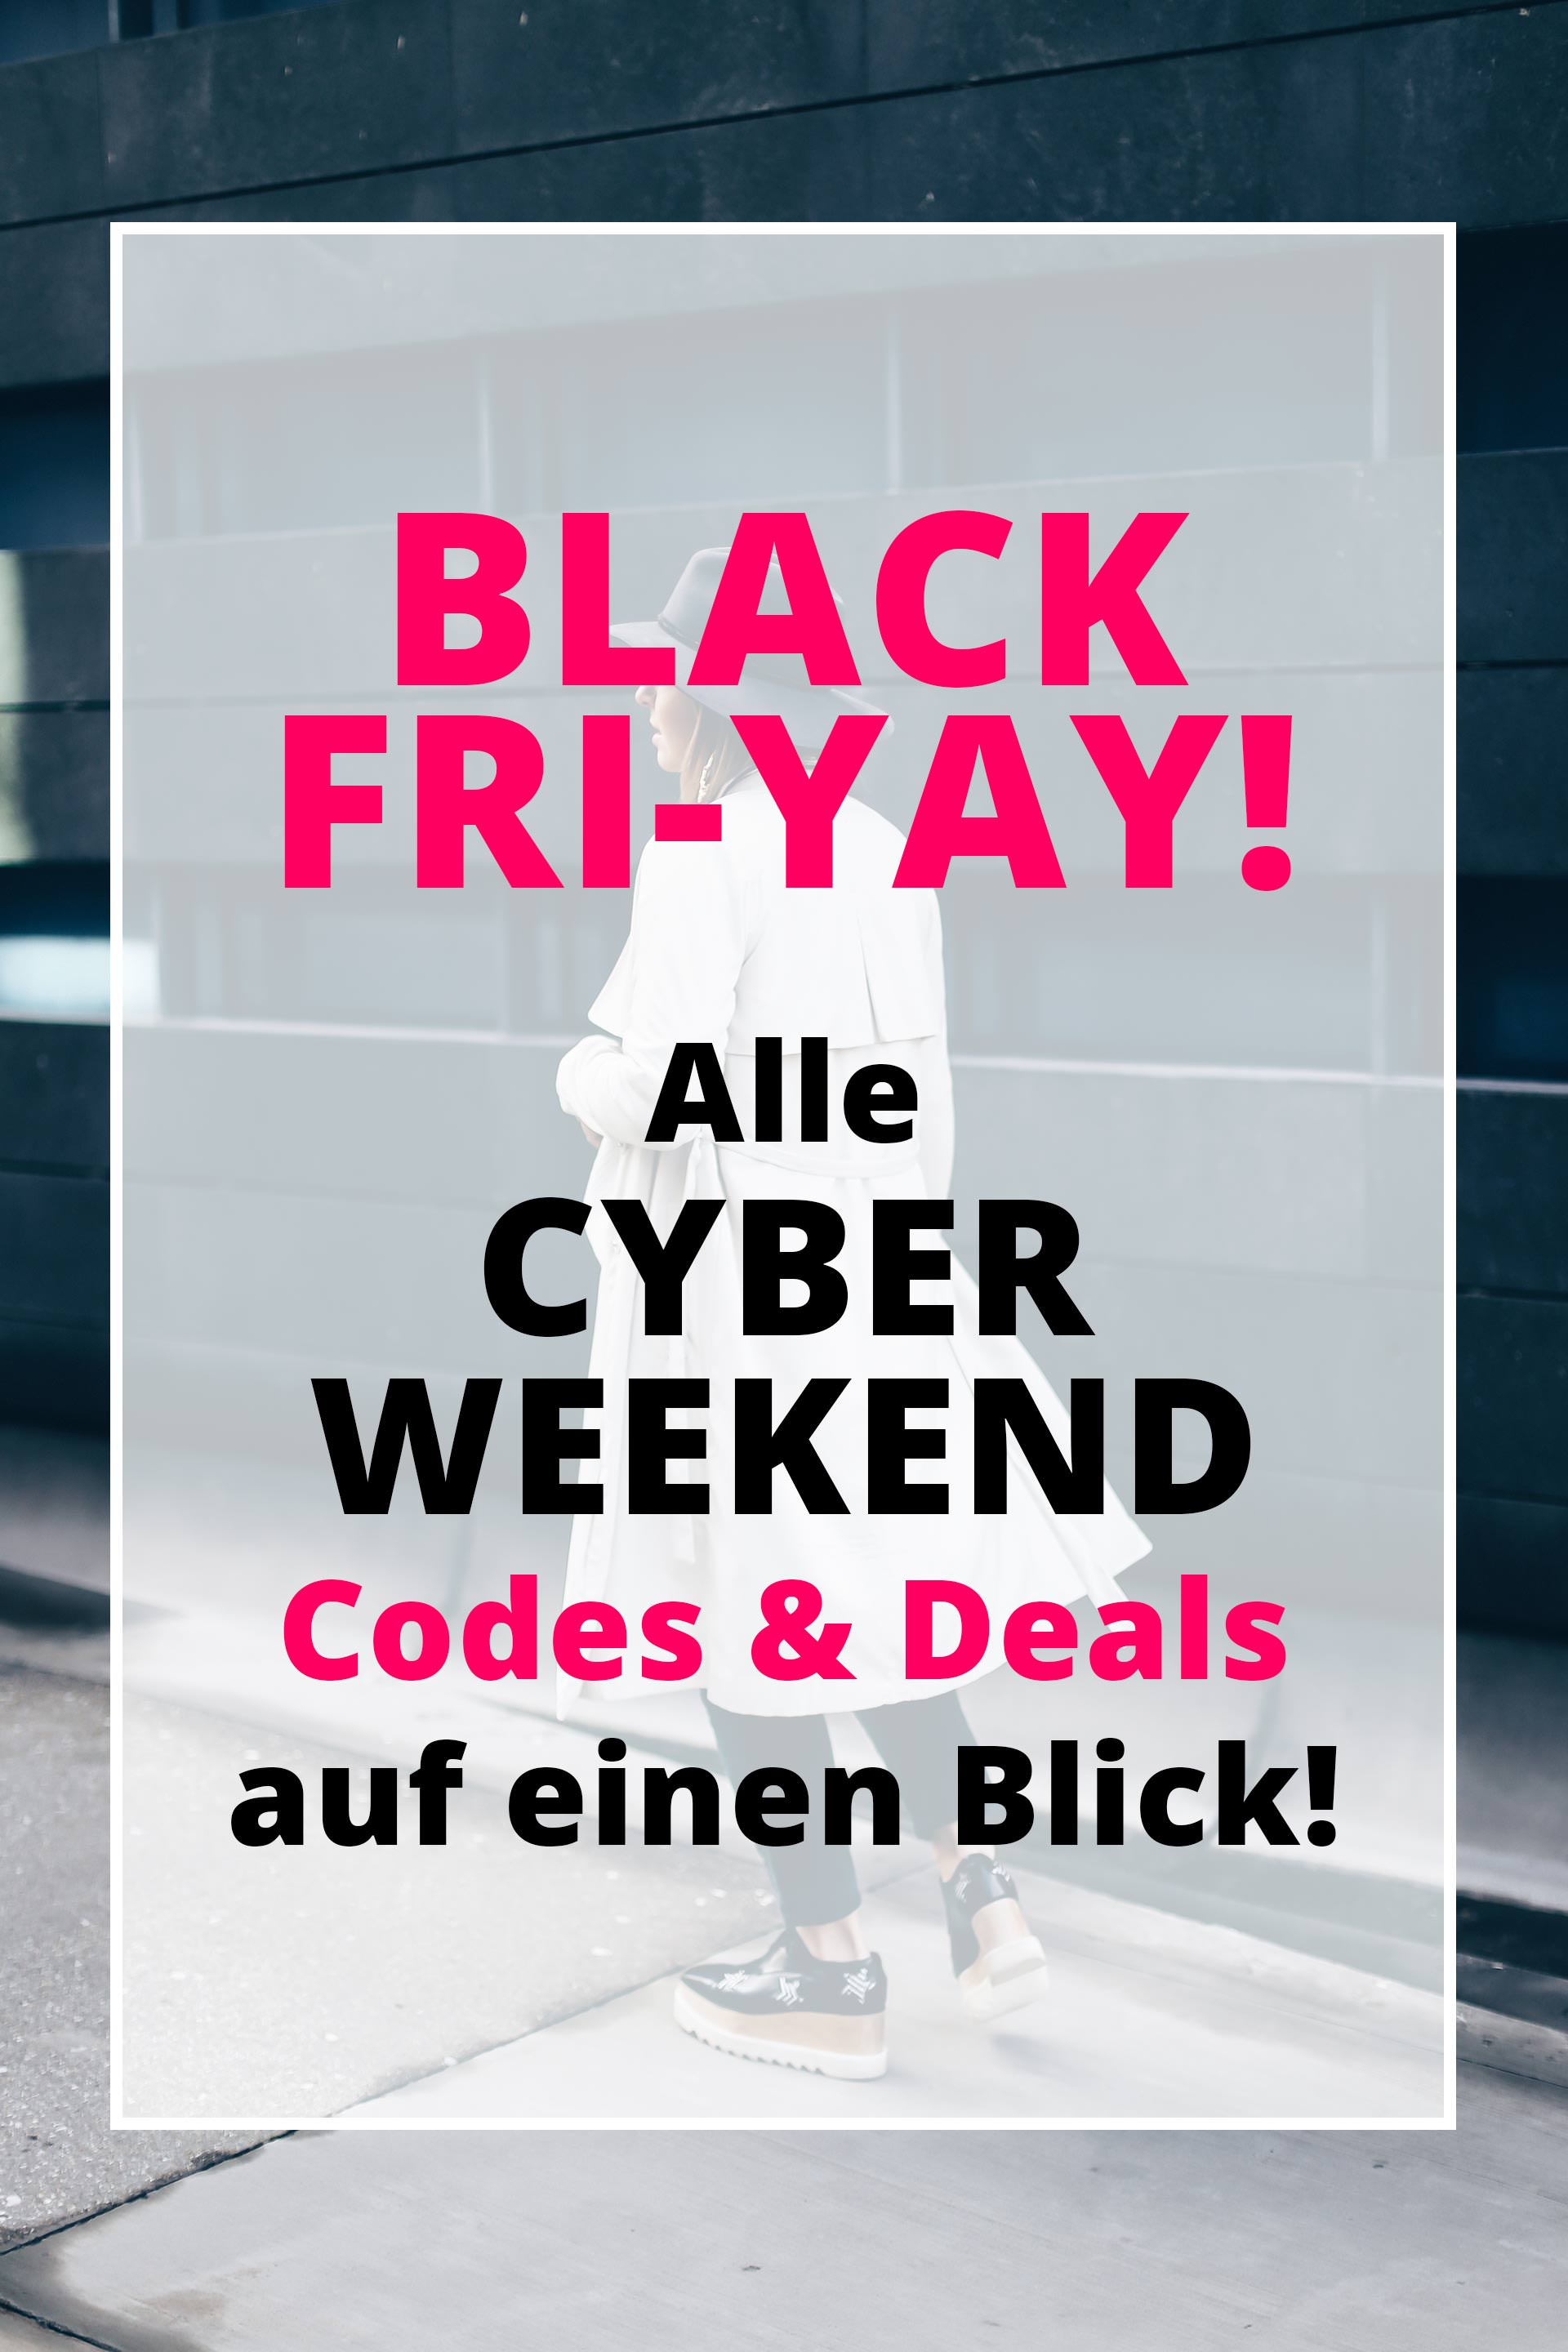 Black Fri-YAY, Cyber Monday, Alle Cyber Weekend Deals, Codes, Rabatte, Sales auf einen Blick, Fashion Blog, Style Blog, www.whoismocca.com